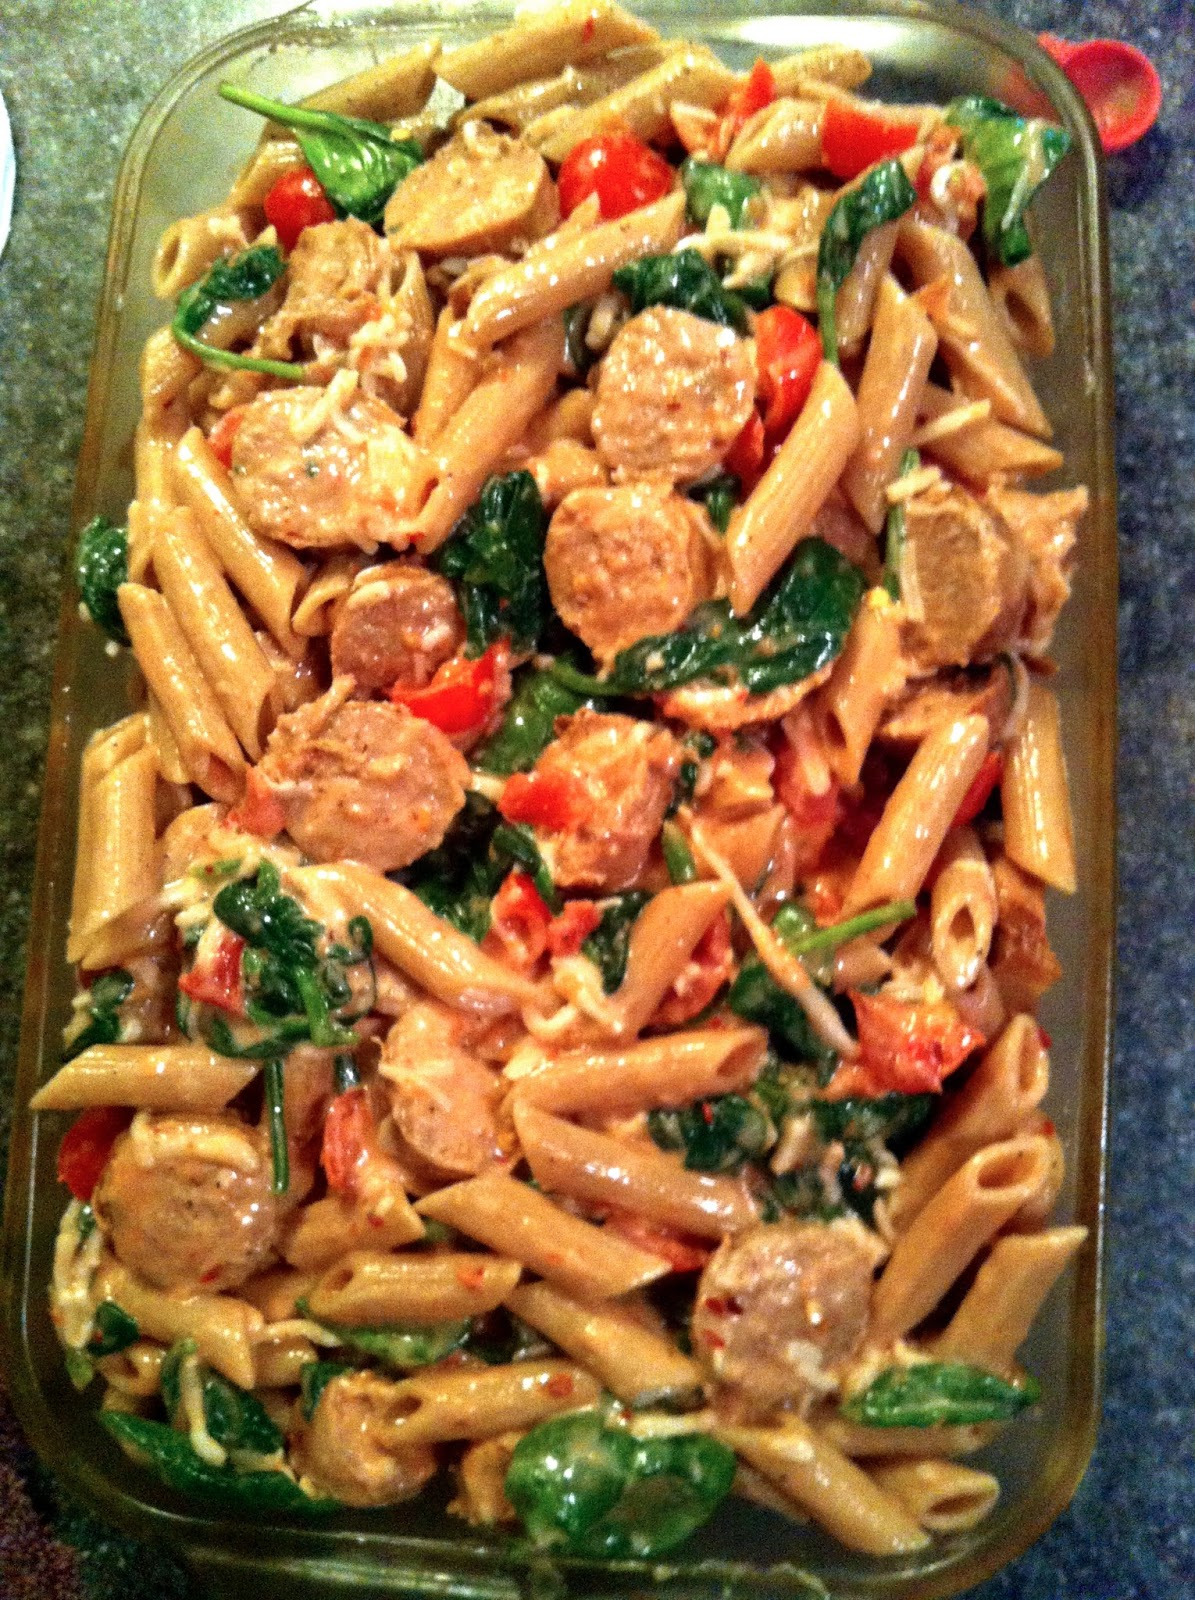 ... sausage sausage and kale pasta bake shell pasta with sausage and